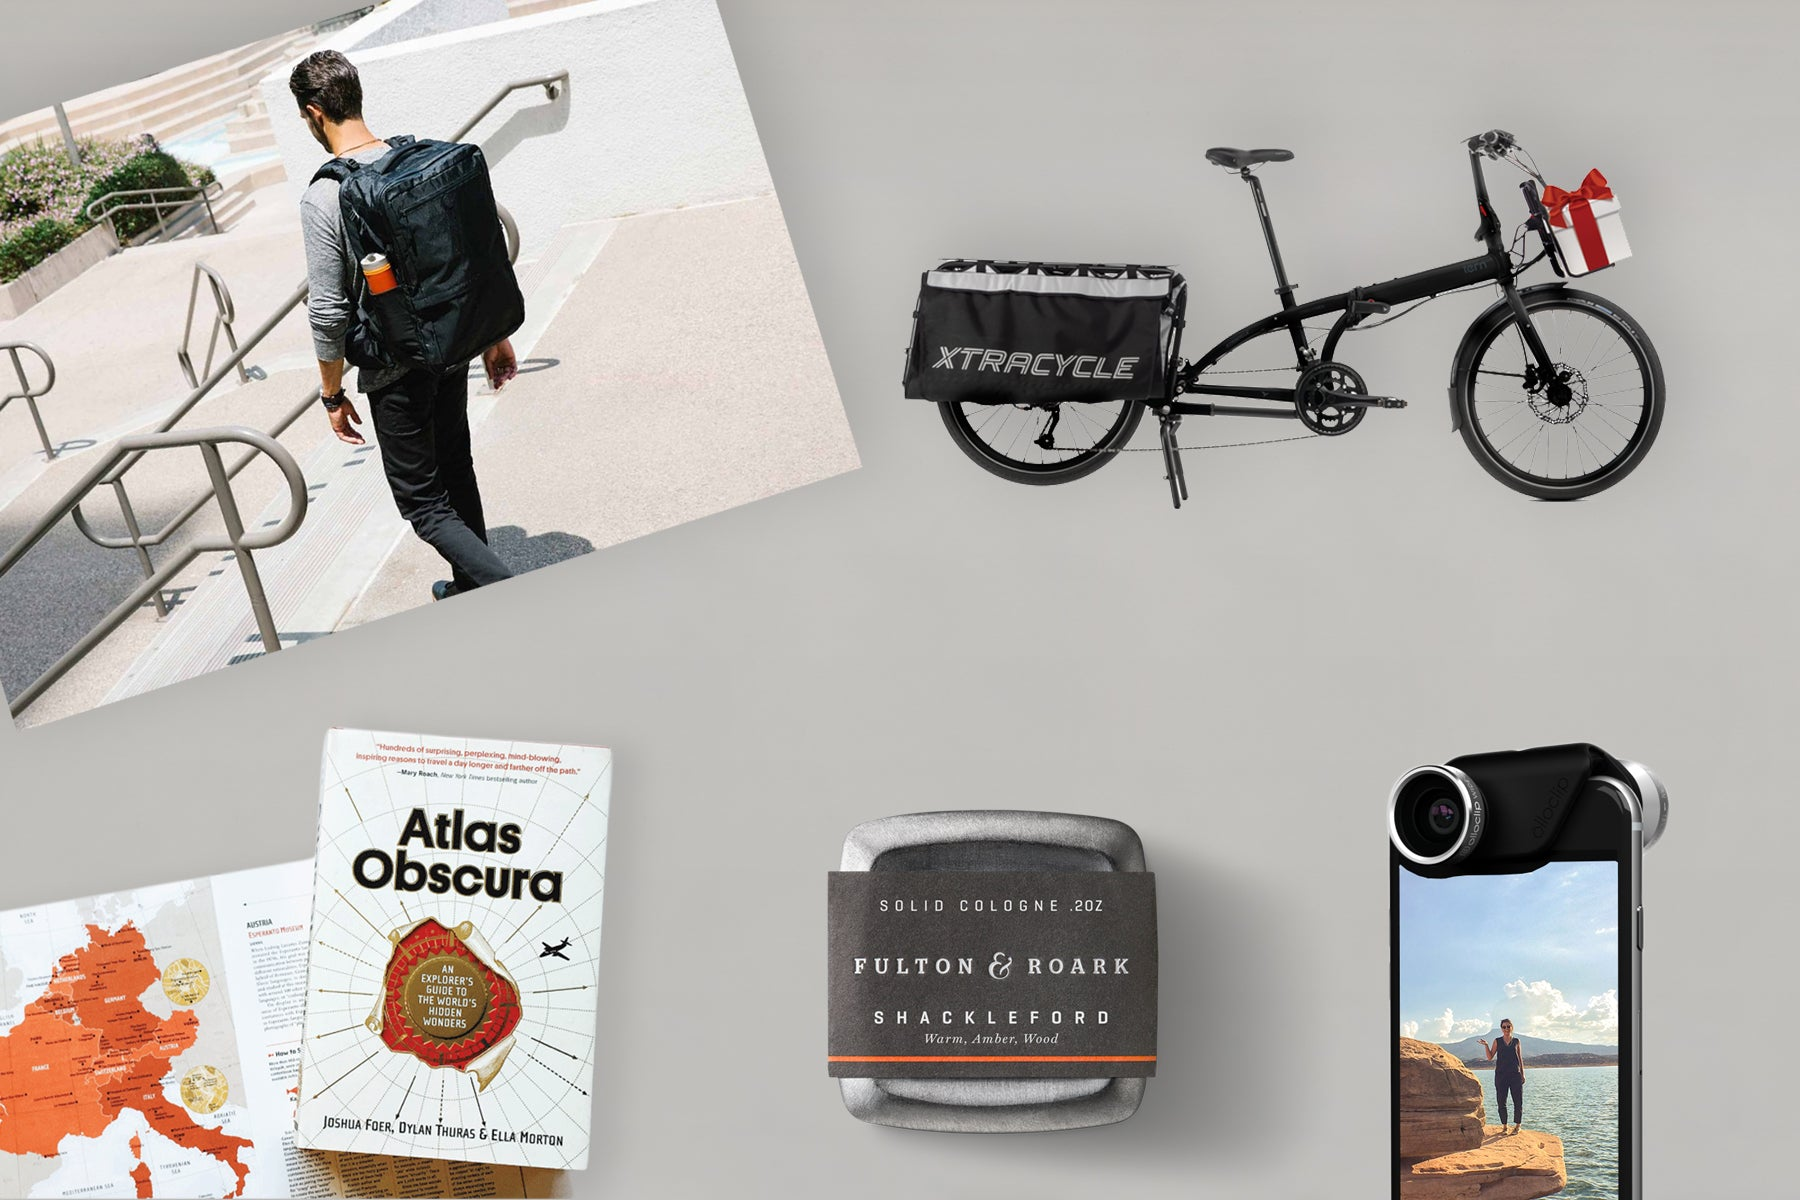 The Bluffworks gift guide showing a Tortuga backpack, Xtracycle bike, Fulton + Roark cologne, and more.